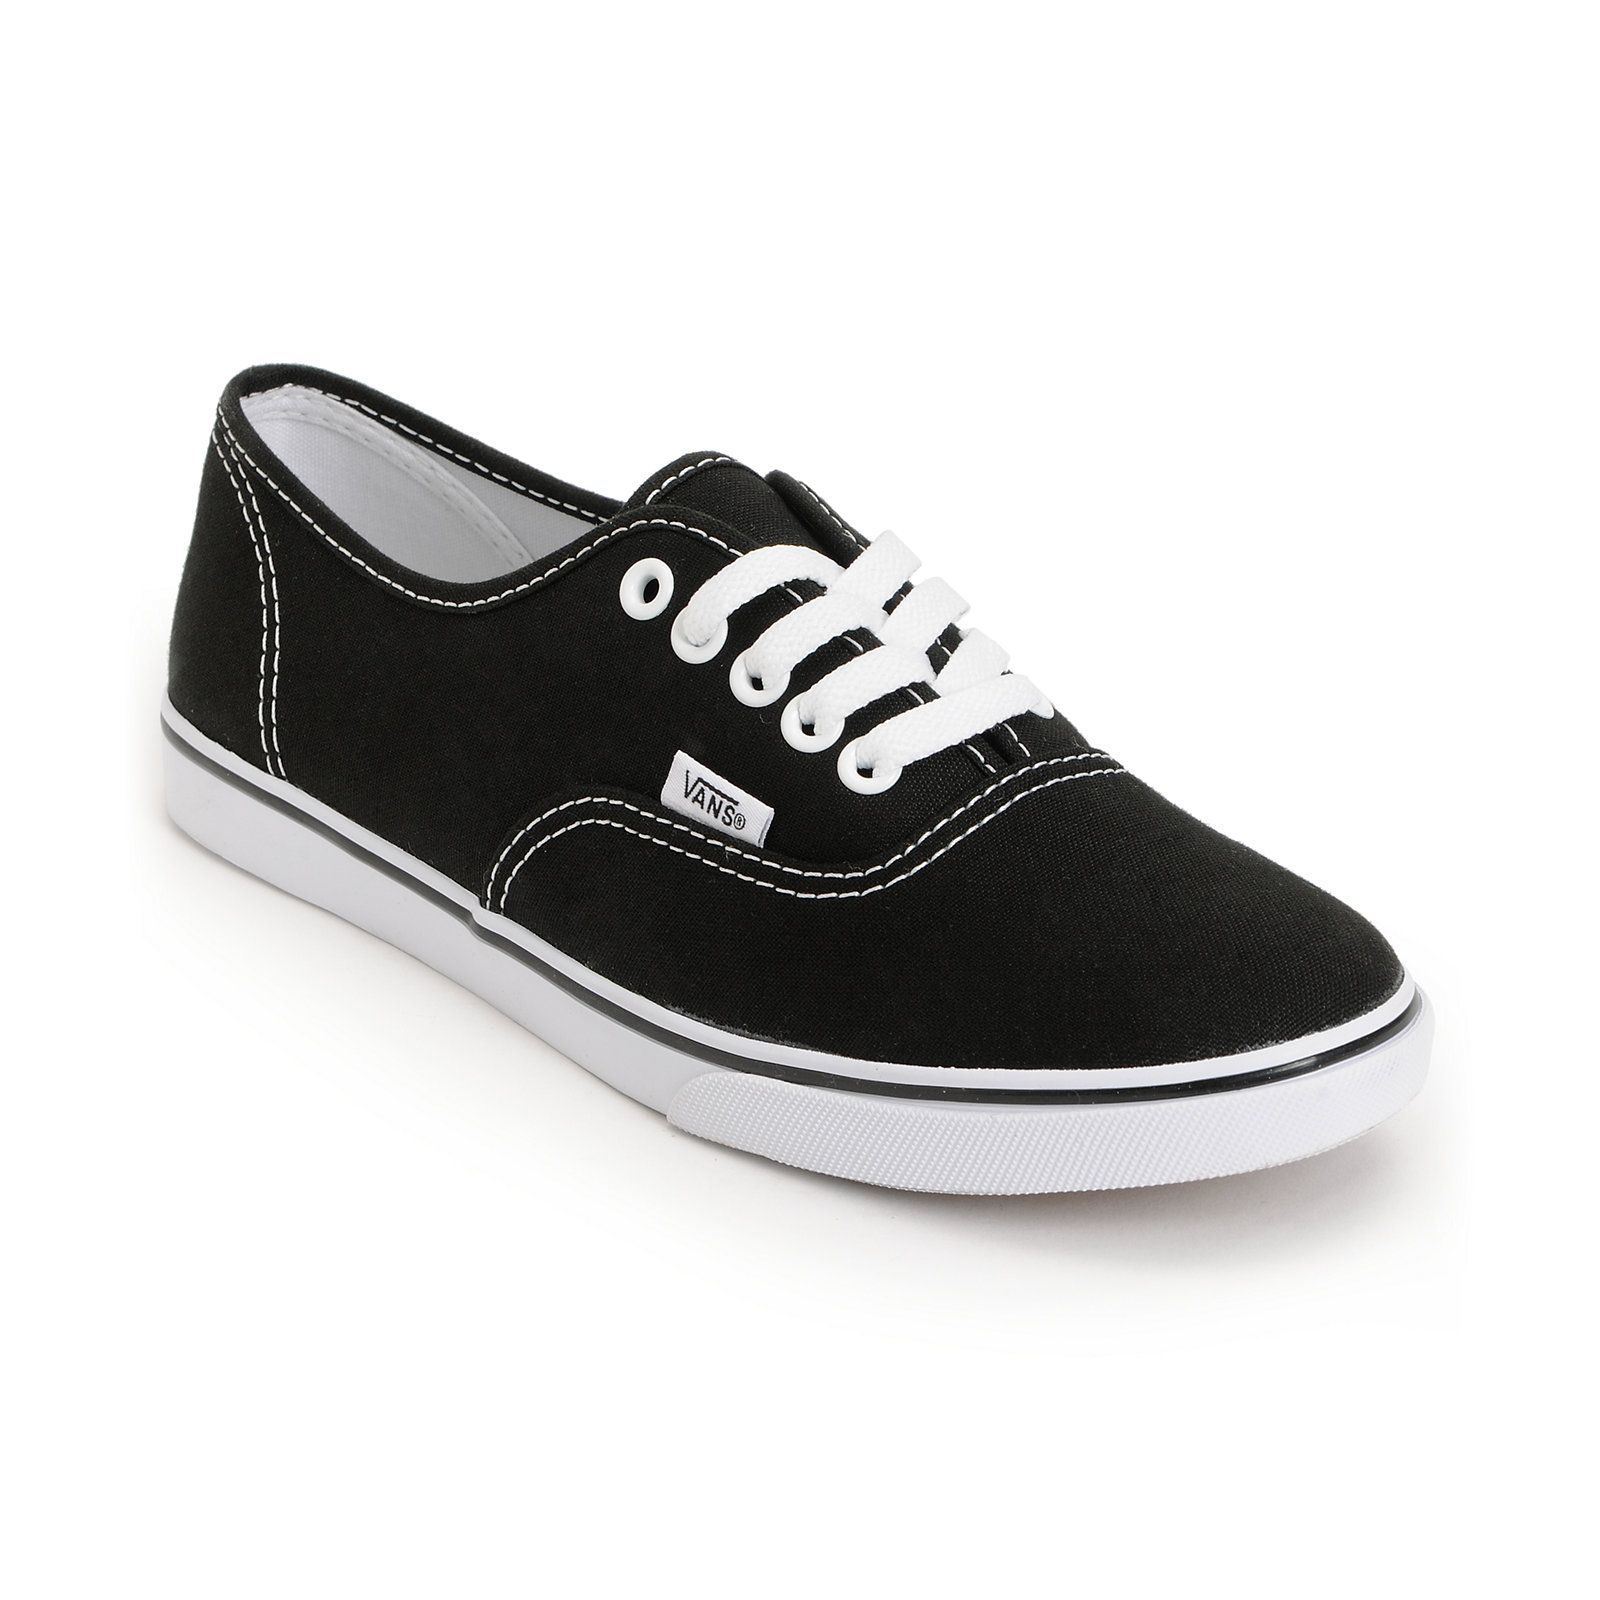 Vans Girls Authentic Lo Pro Black Shoe at Zumiez   PDP 6d9be2c62